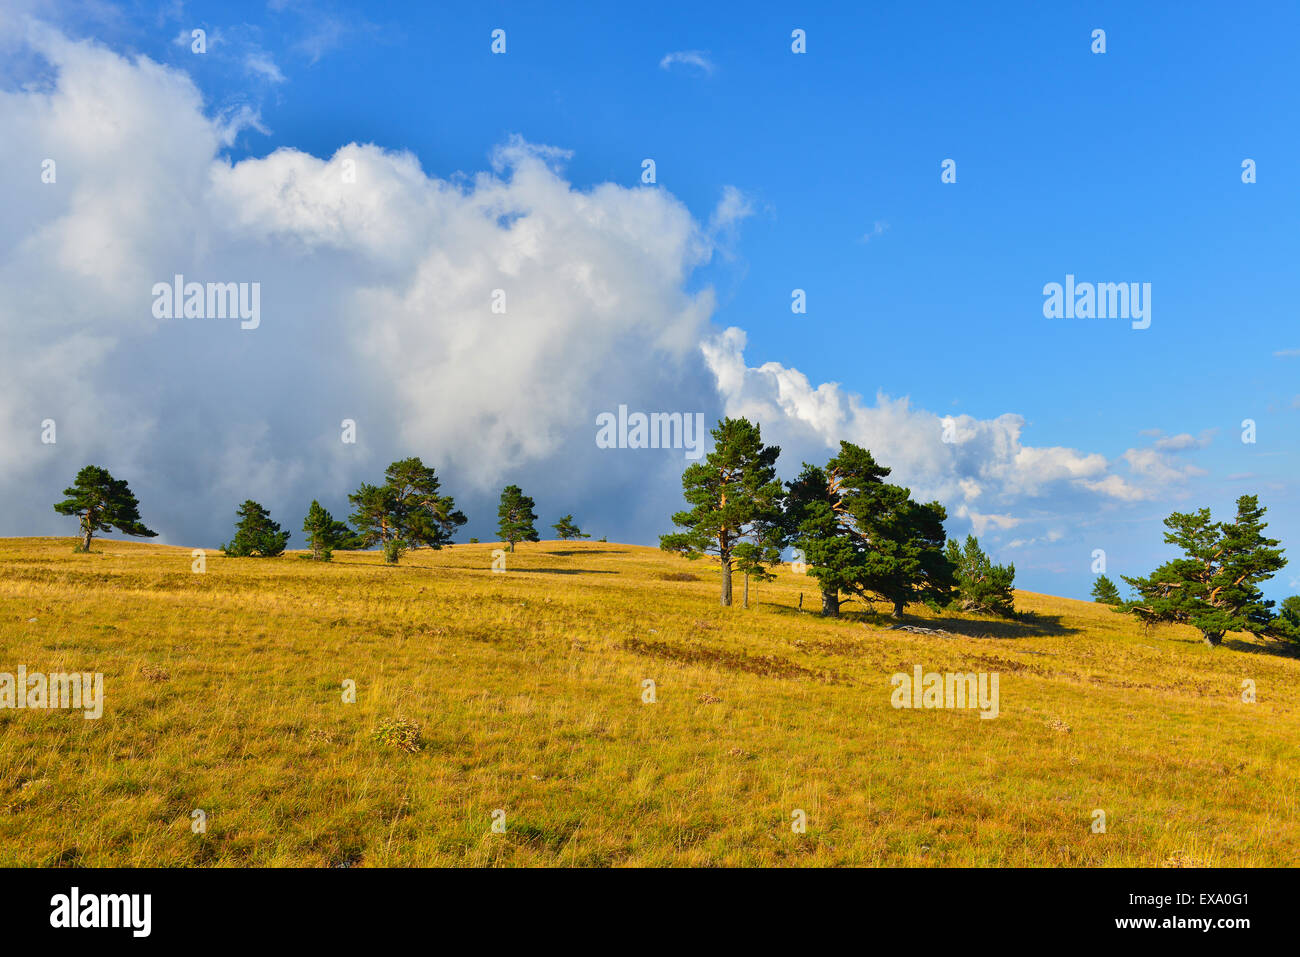 Summer highland in sunny weather. - Stock Image